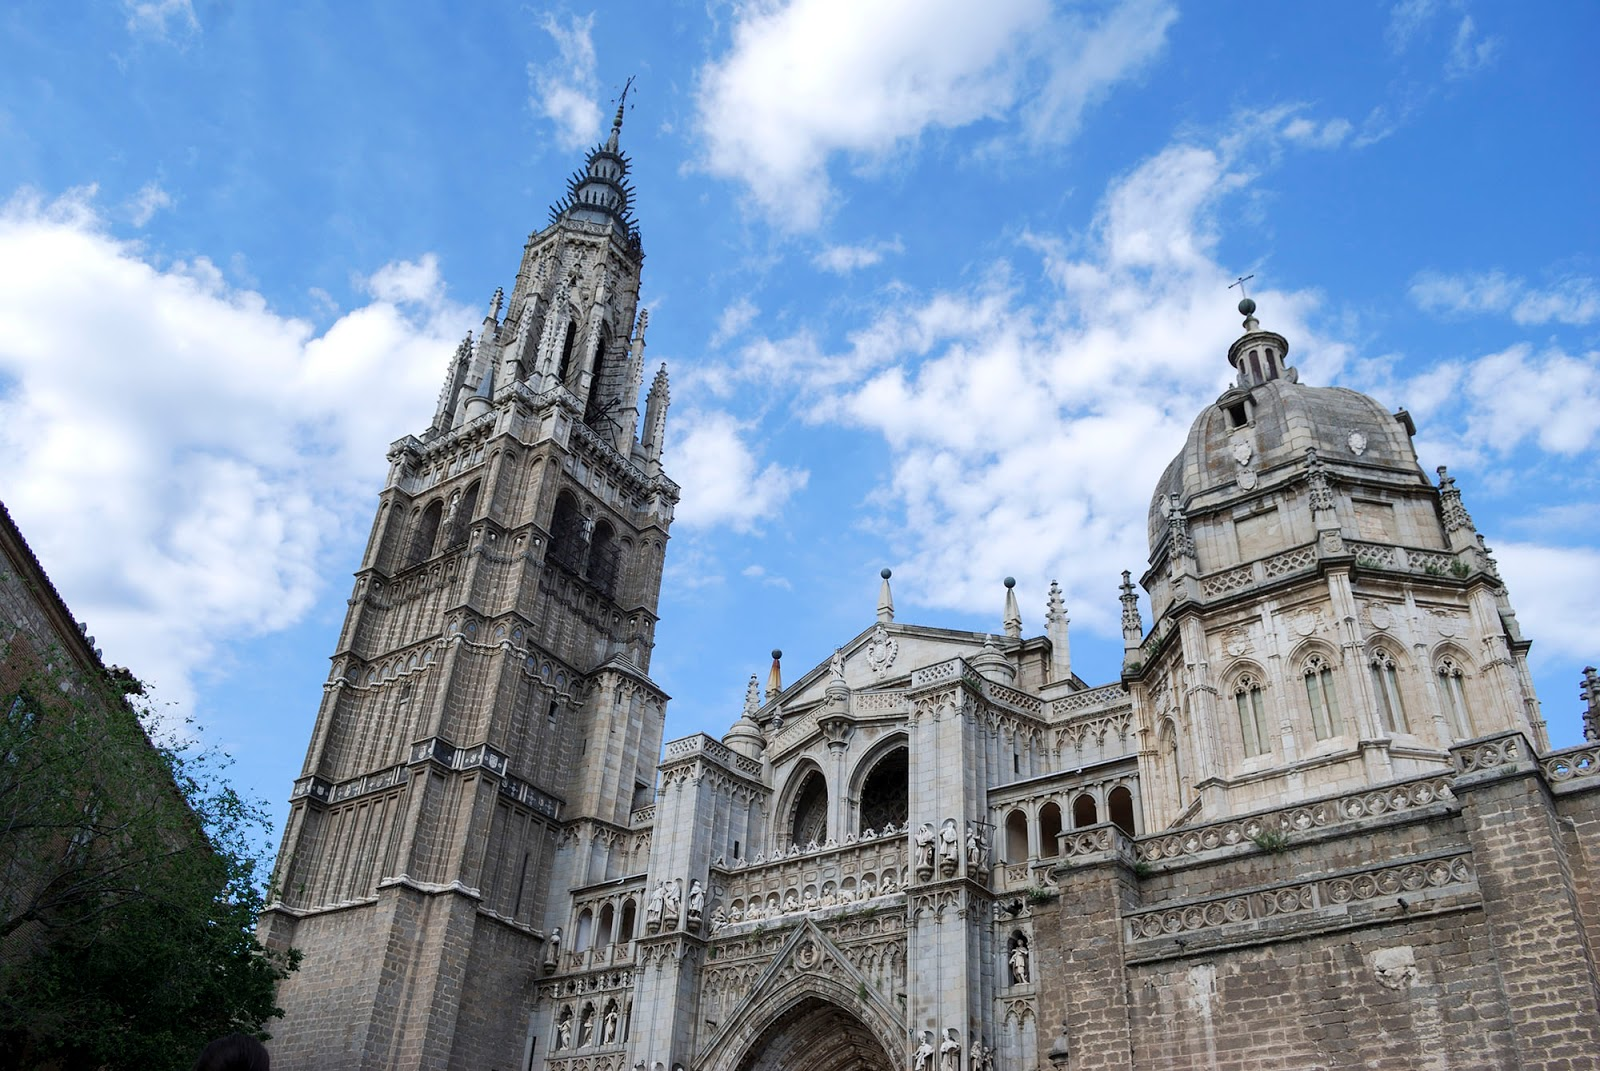 cathedral toledo spain landmark history travel guide tourism day trip itinerary